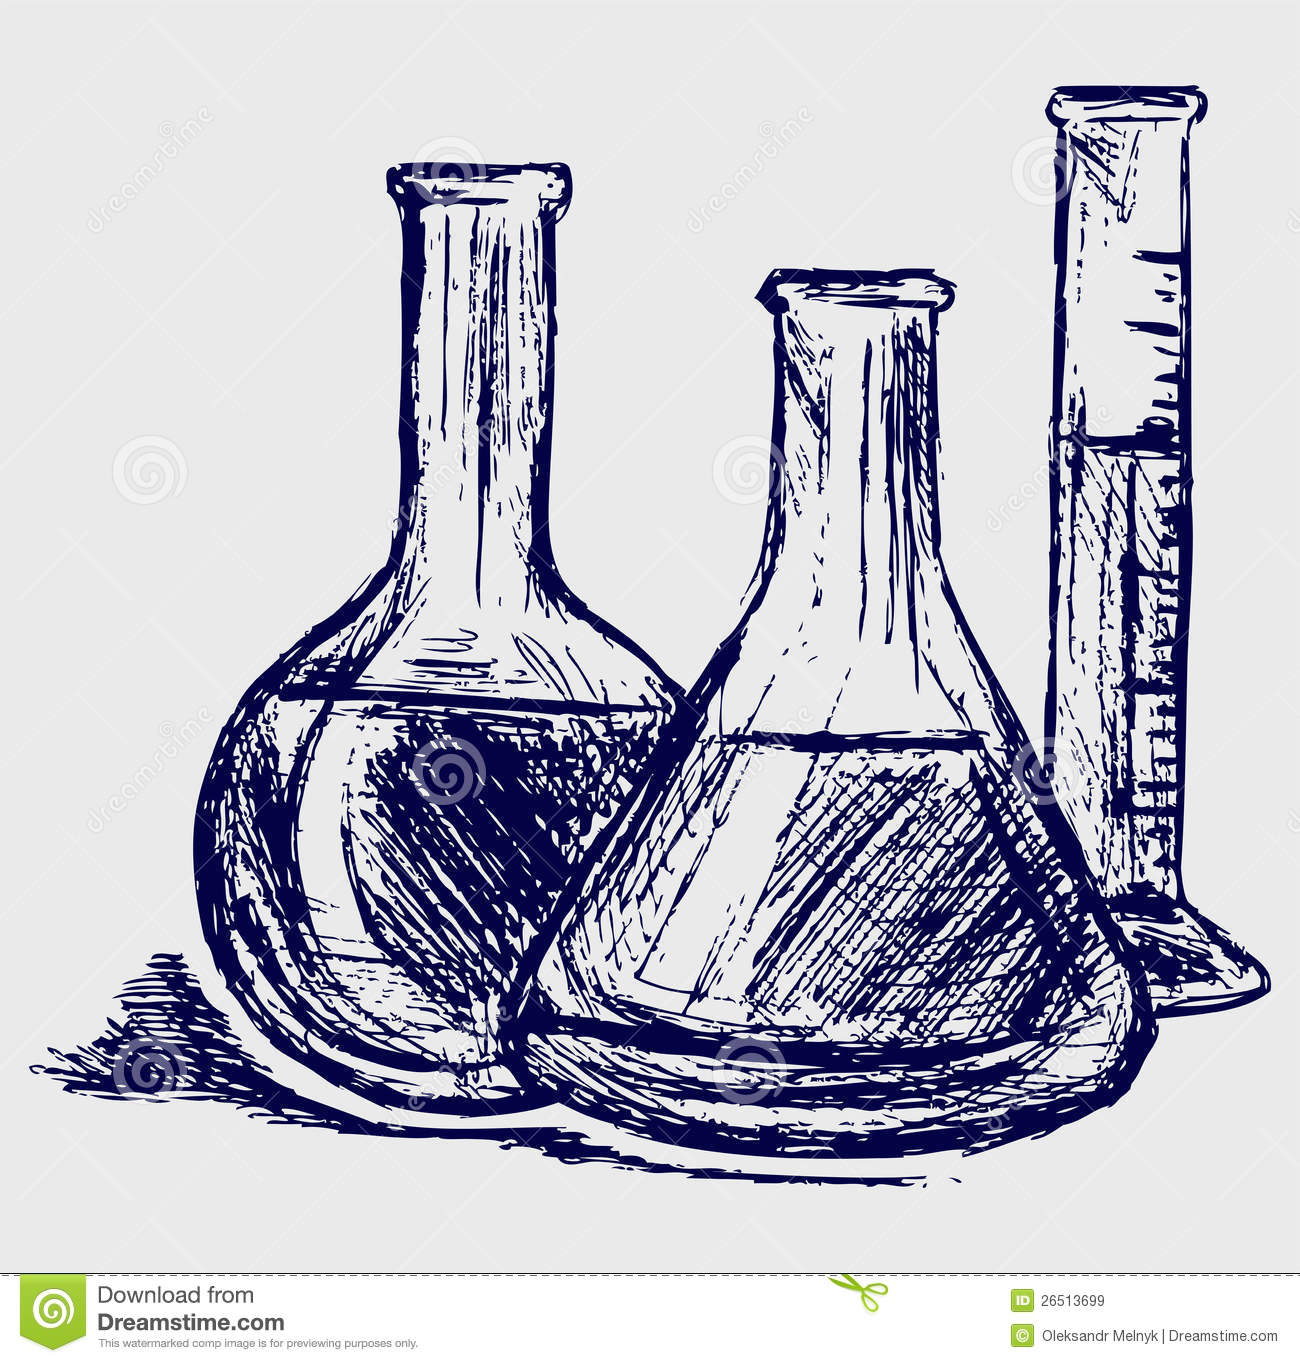 Laboratory glassware stock vector. Illustration of cartoon ...